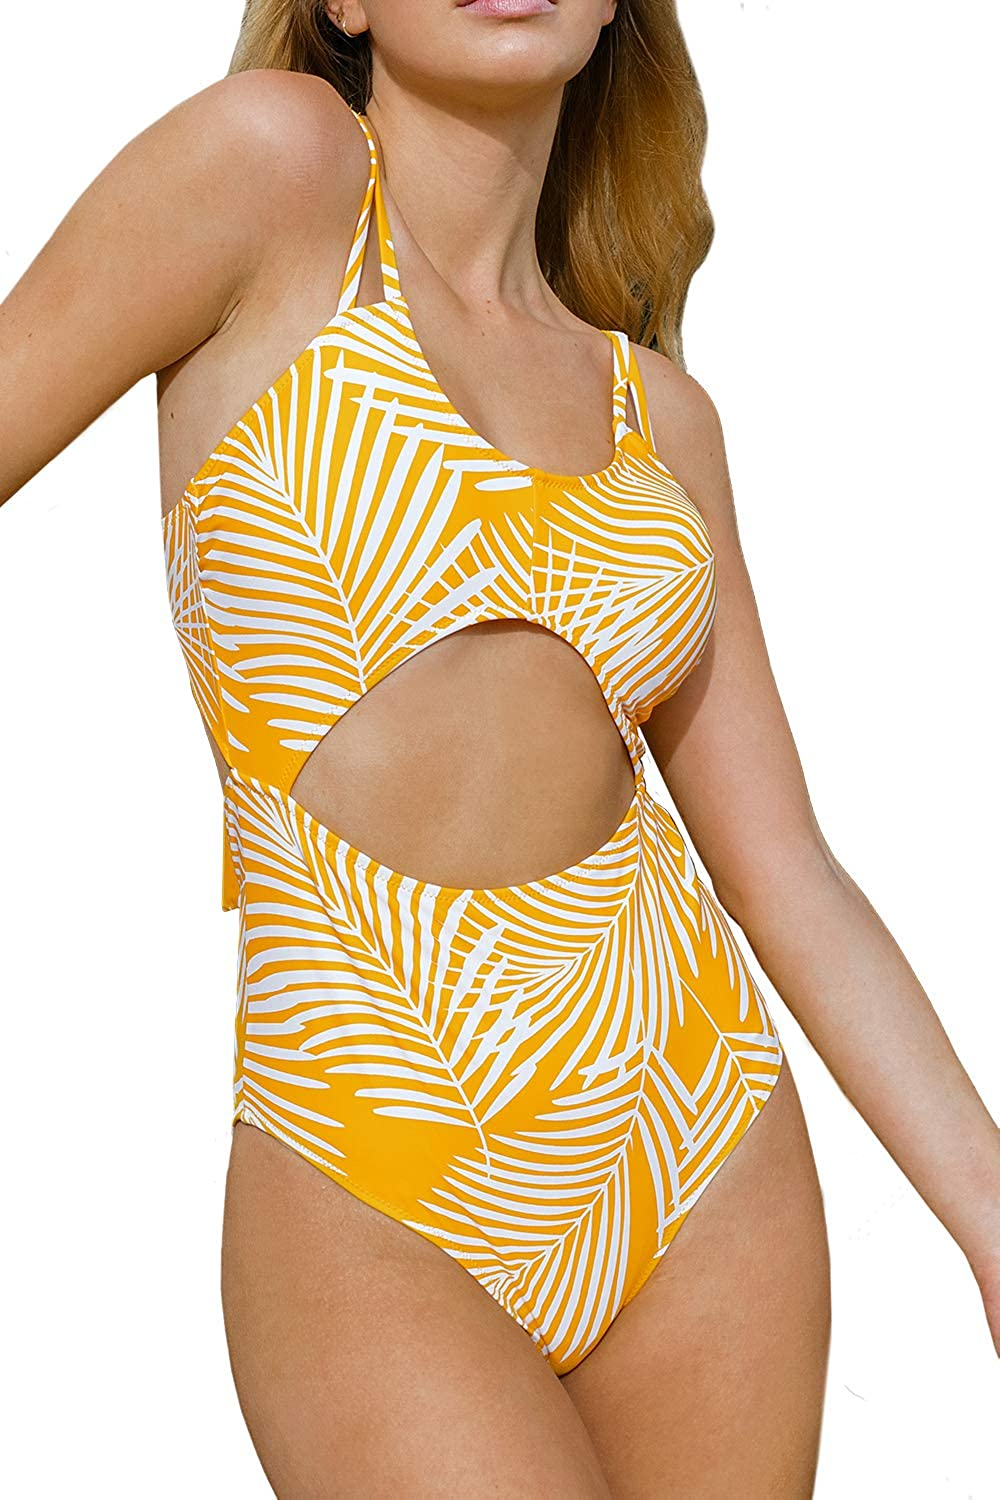 CUPSHE Women's Yellow Leaf Print Cut Padded Lace Award-winning store Out One Over item handling ☆ Up Sexy